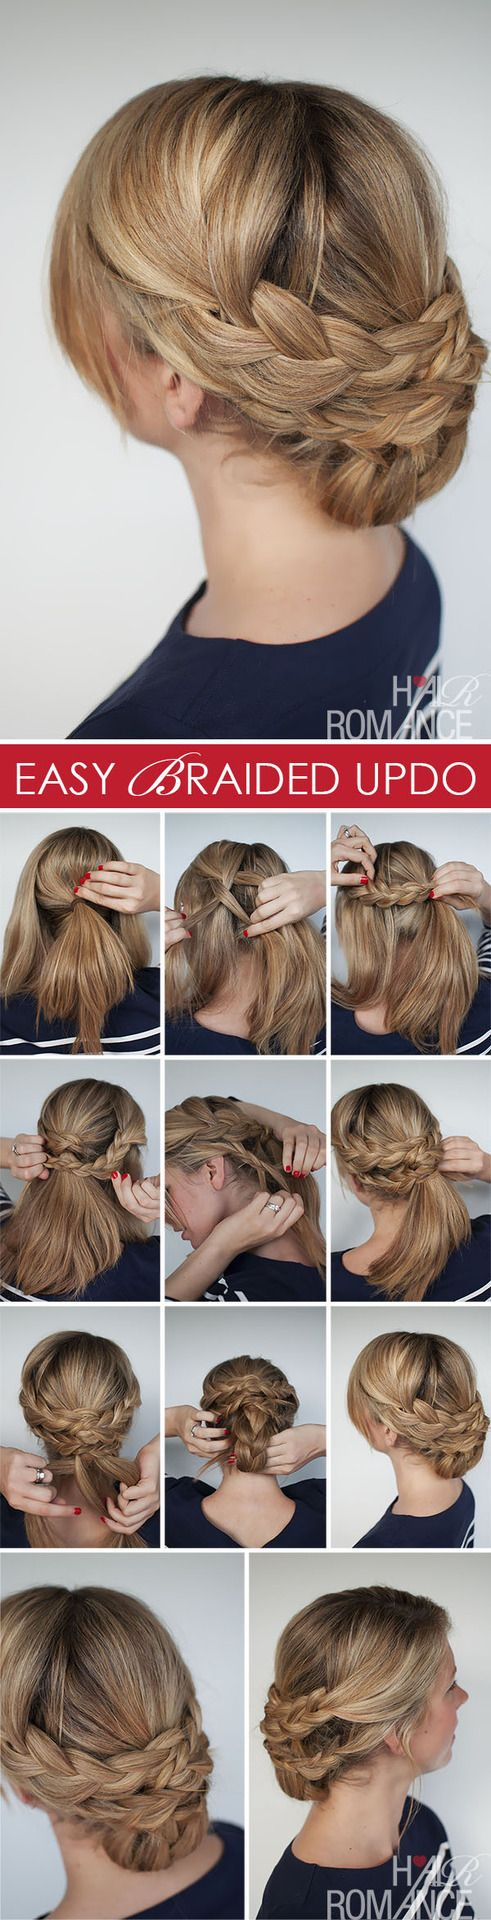 Hairstyle how to Hair Romance easy braided upstyle tutorial  #hair #hairstyles